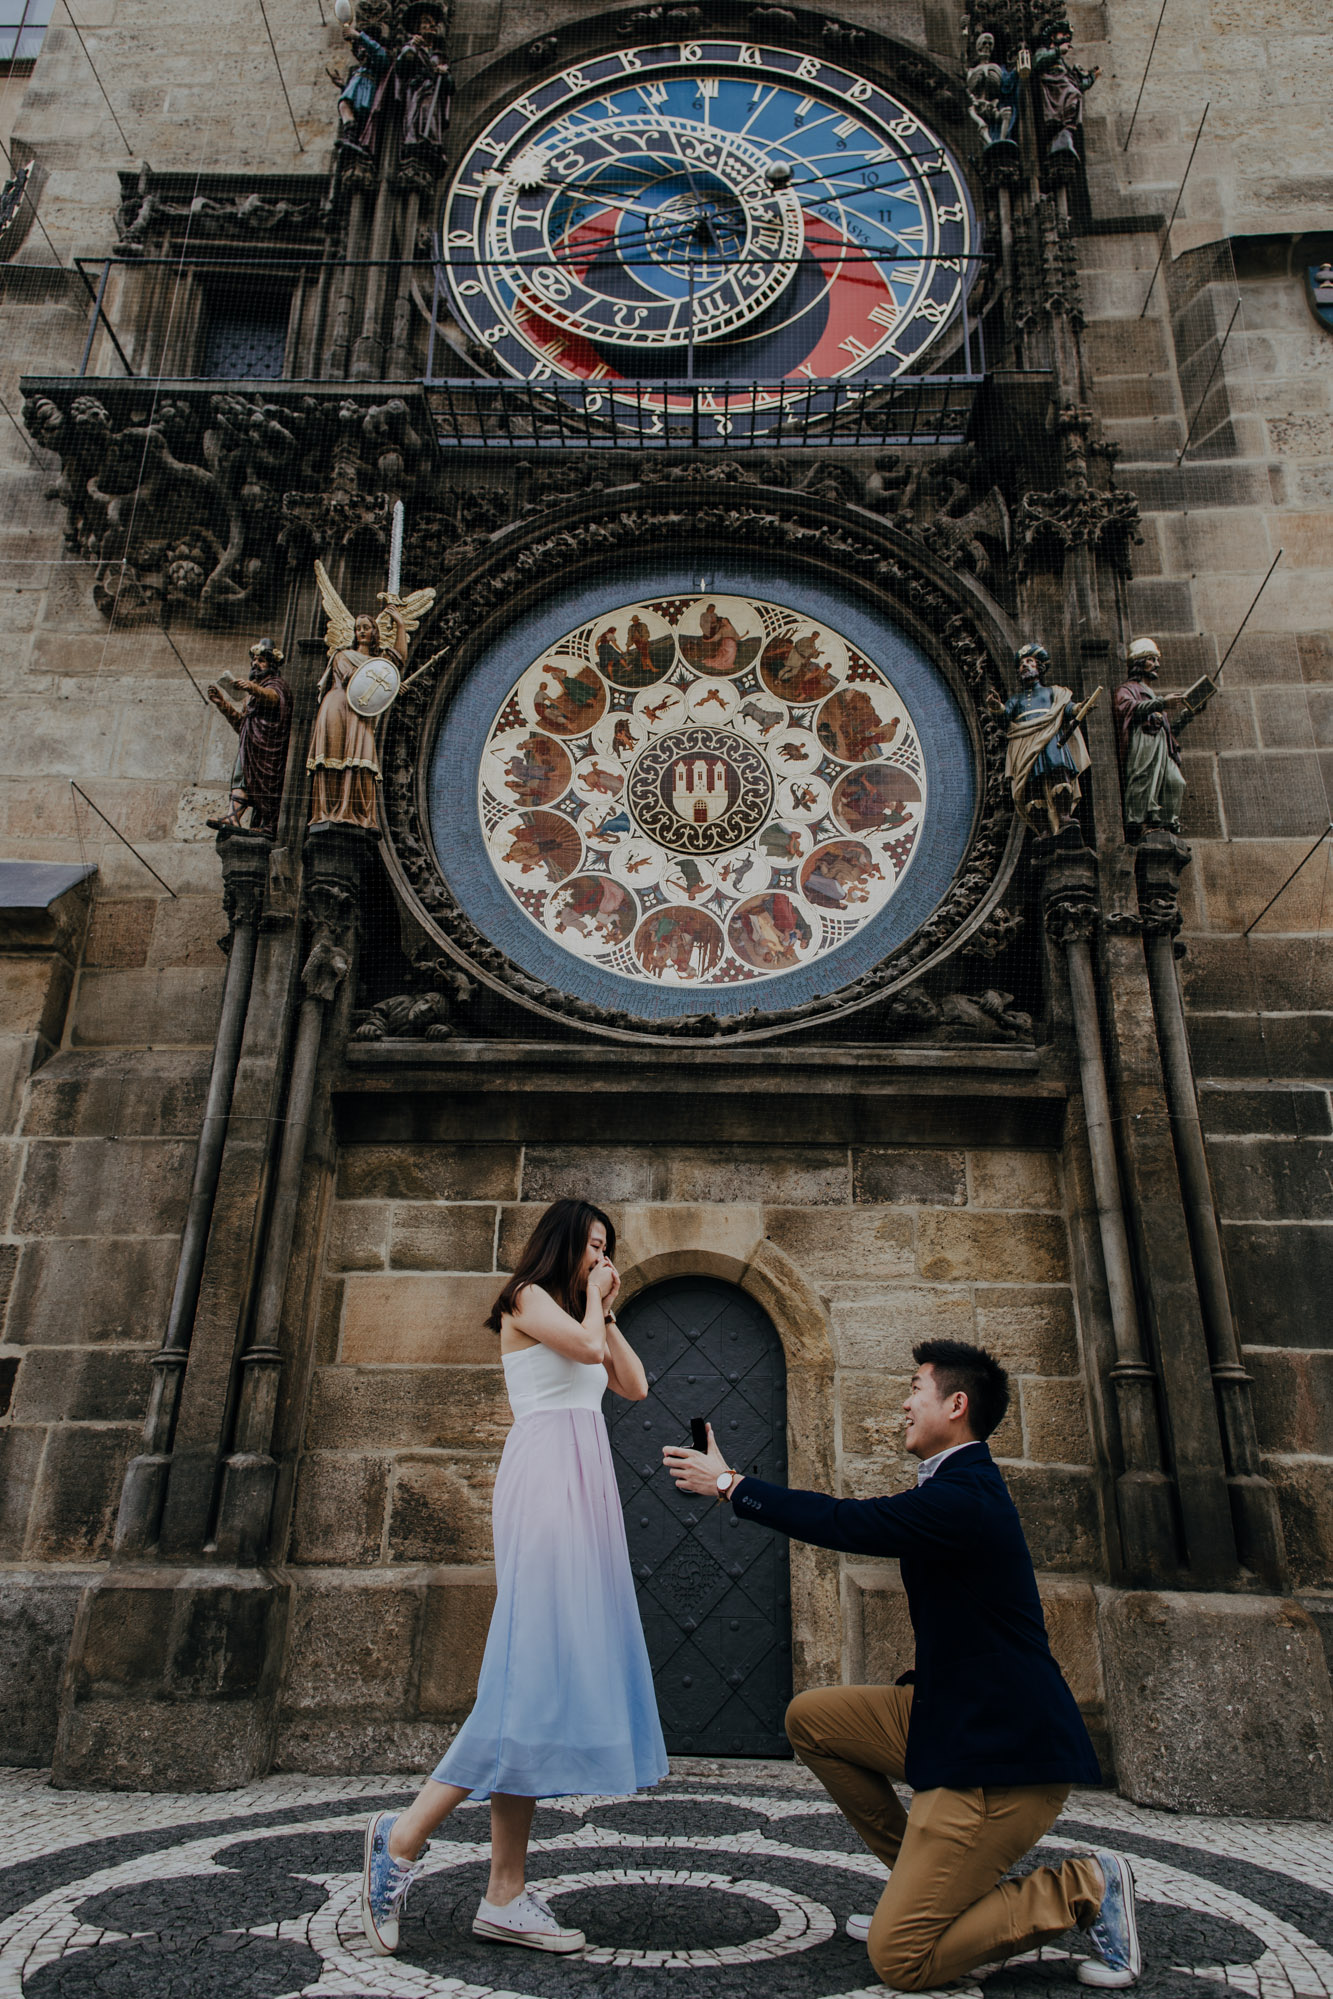 Best places for marriage proposal in Prague